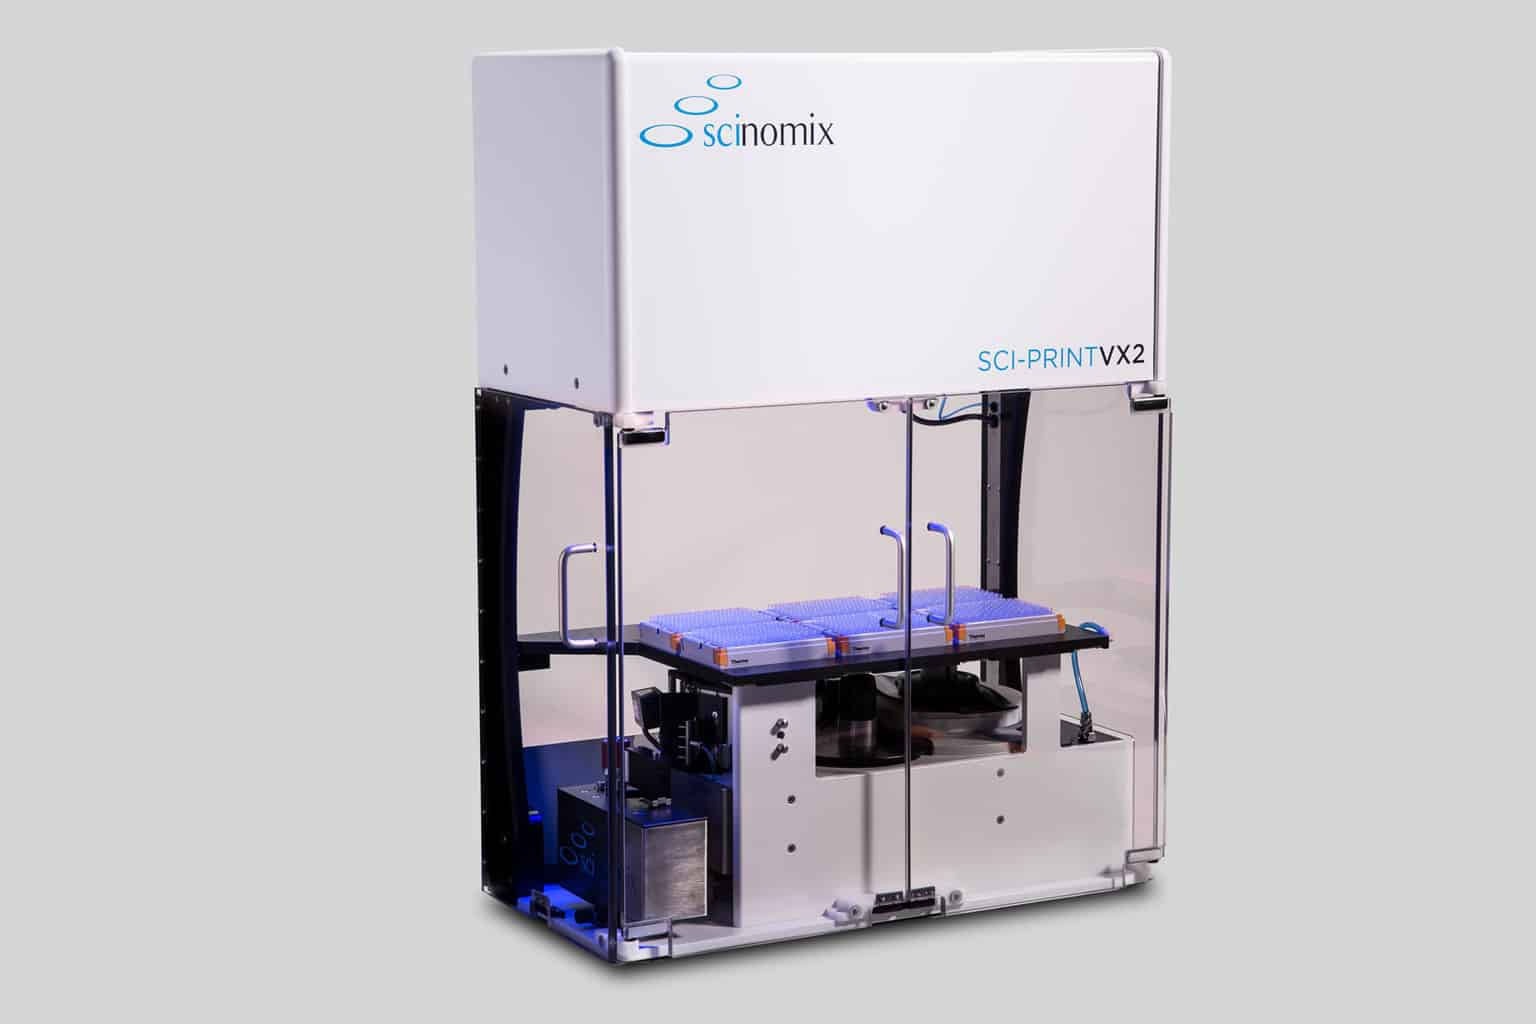 The Sci-Print VX2 is a fully automated tube labeling system, capable of printing and applying labels to tubes ranging from 0.5 mL to 50 mL in size.